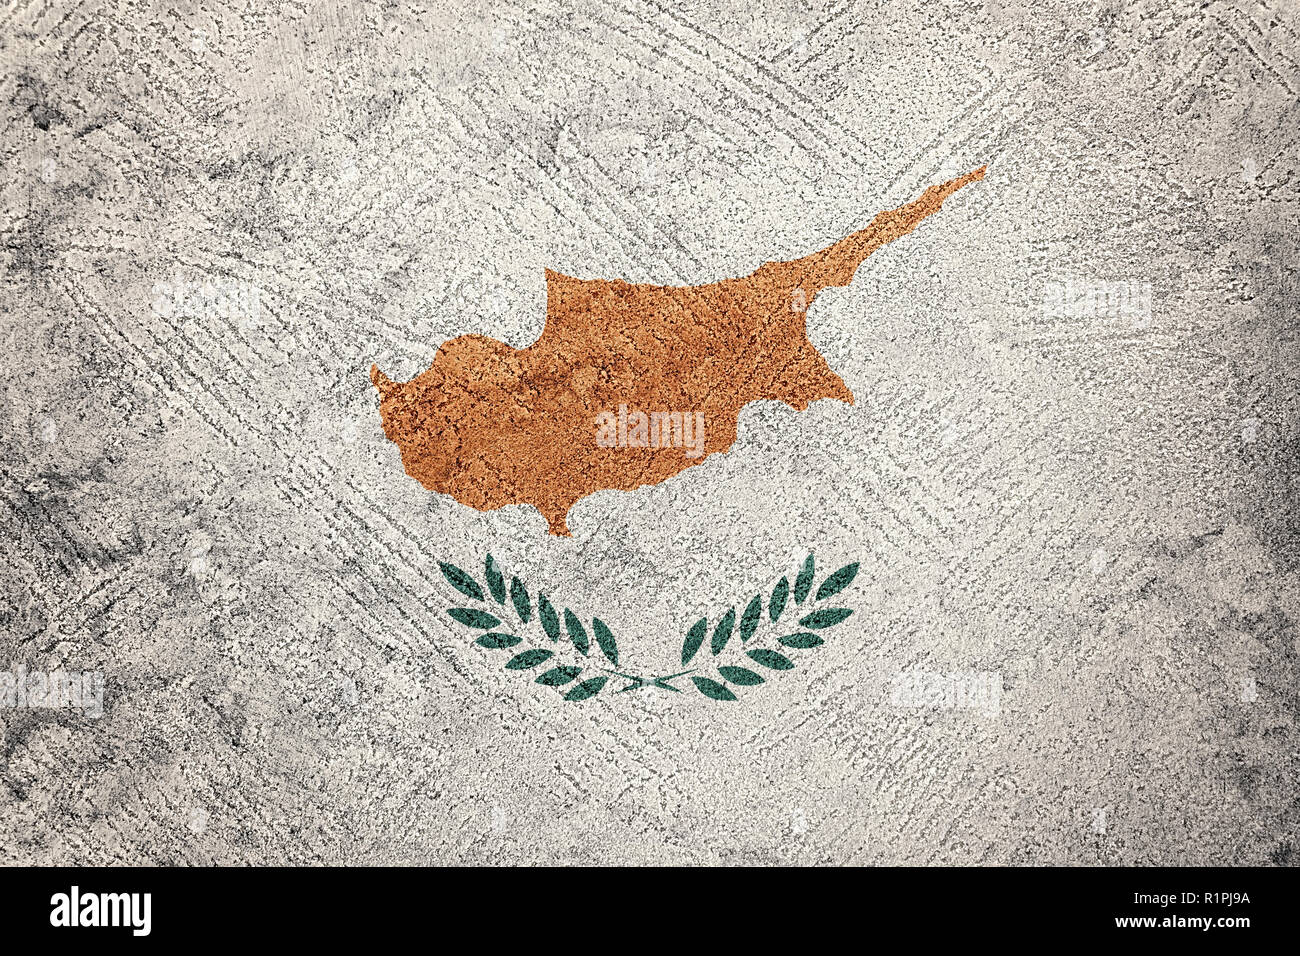 Grunge Cyprus flag. Cyprus flag with grunge texture. - Stock Image